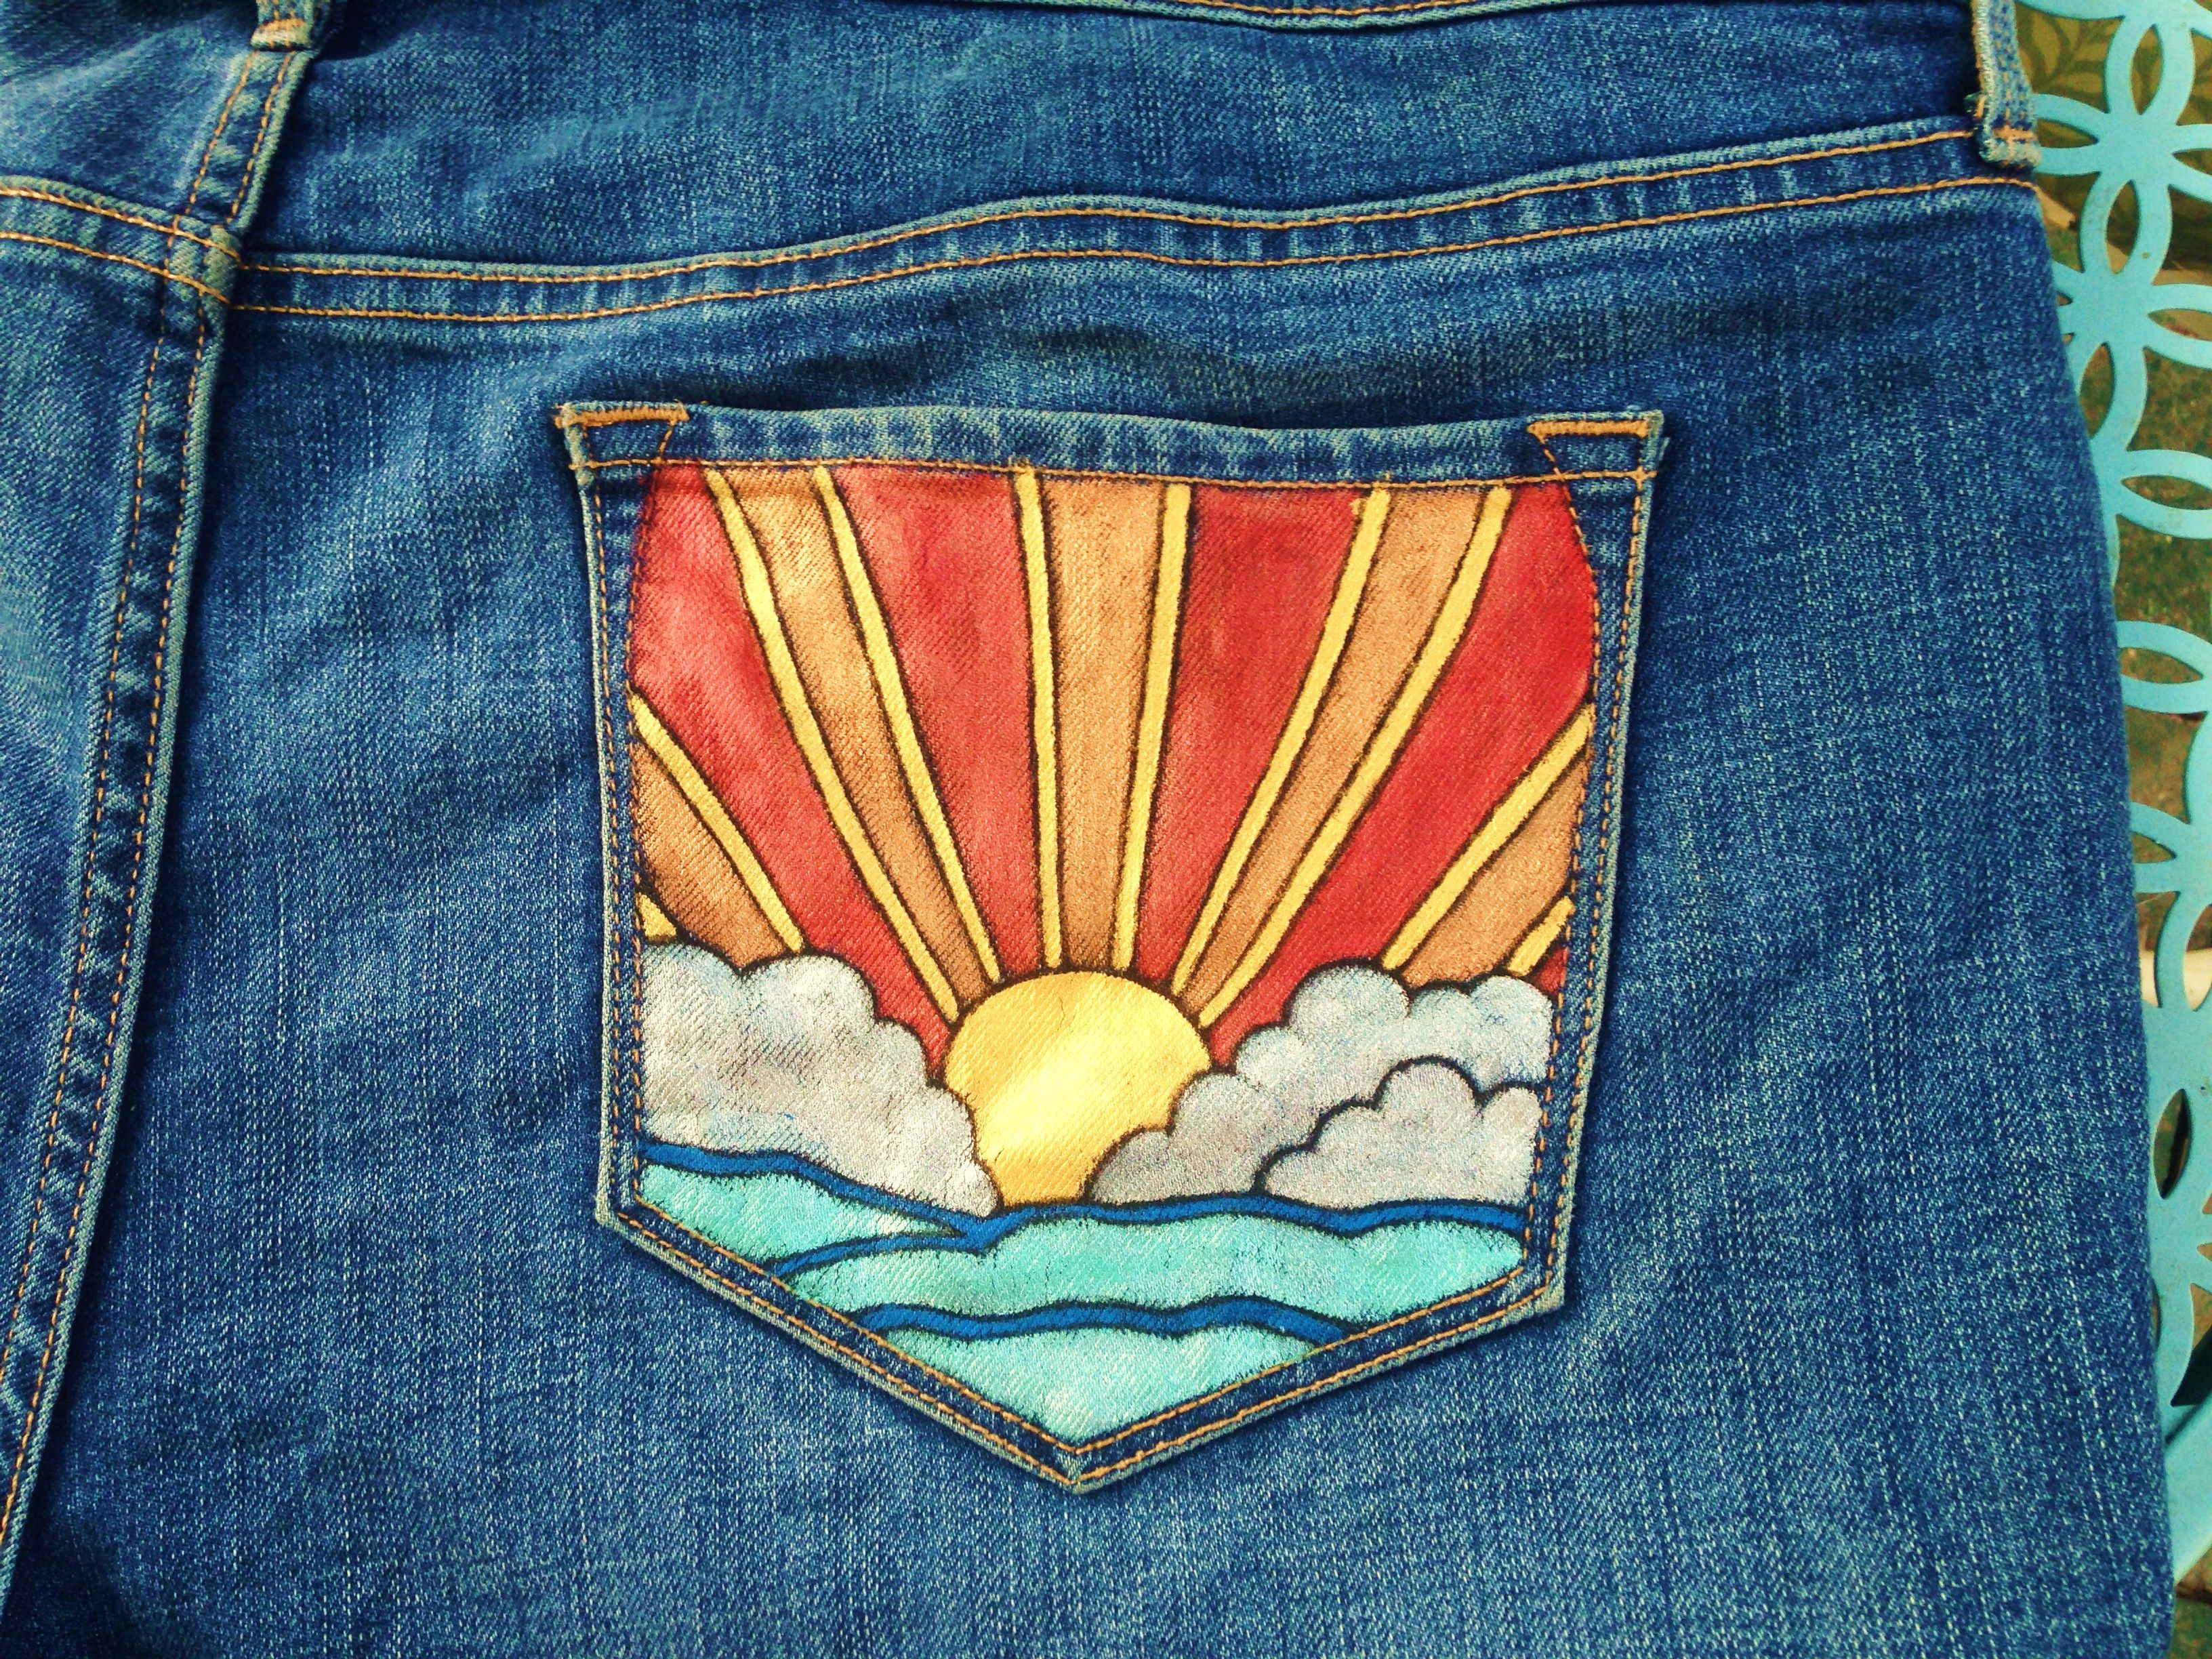 Sunset On The Water Painted On The Back Of A Pair Of Jeans By Bleudoor On Instagram Painted Clothes Diy Denim Art Jeans Diy,Driveway Gate Designs